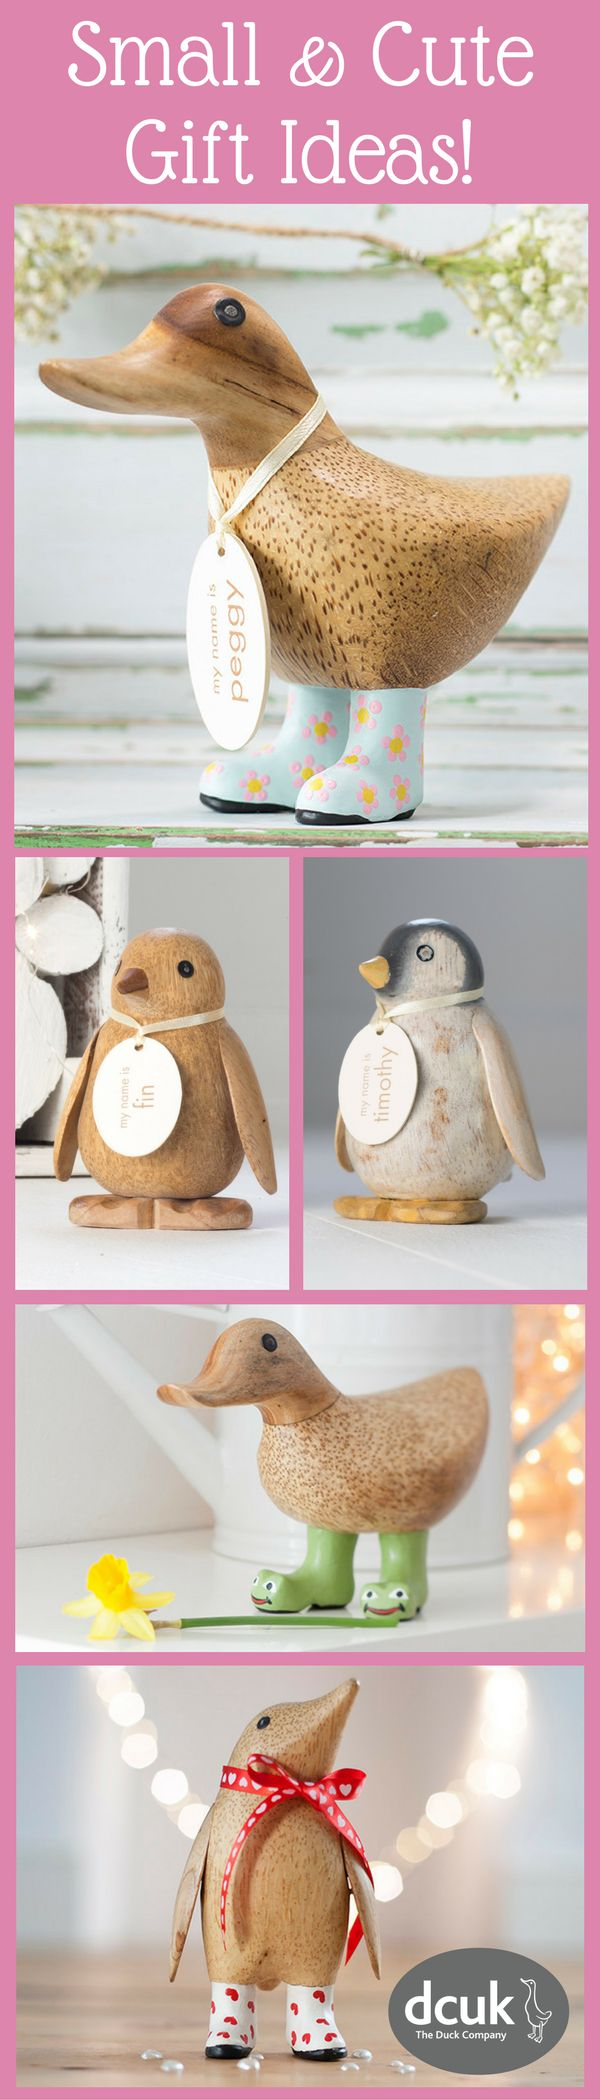 61 best Christmas Gift Ideas images on Pinterest | The duck, Ducks ...